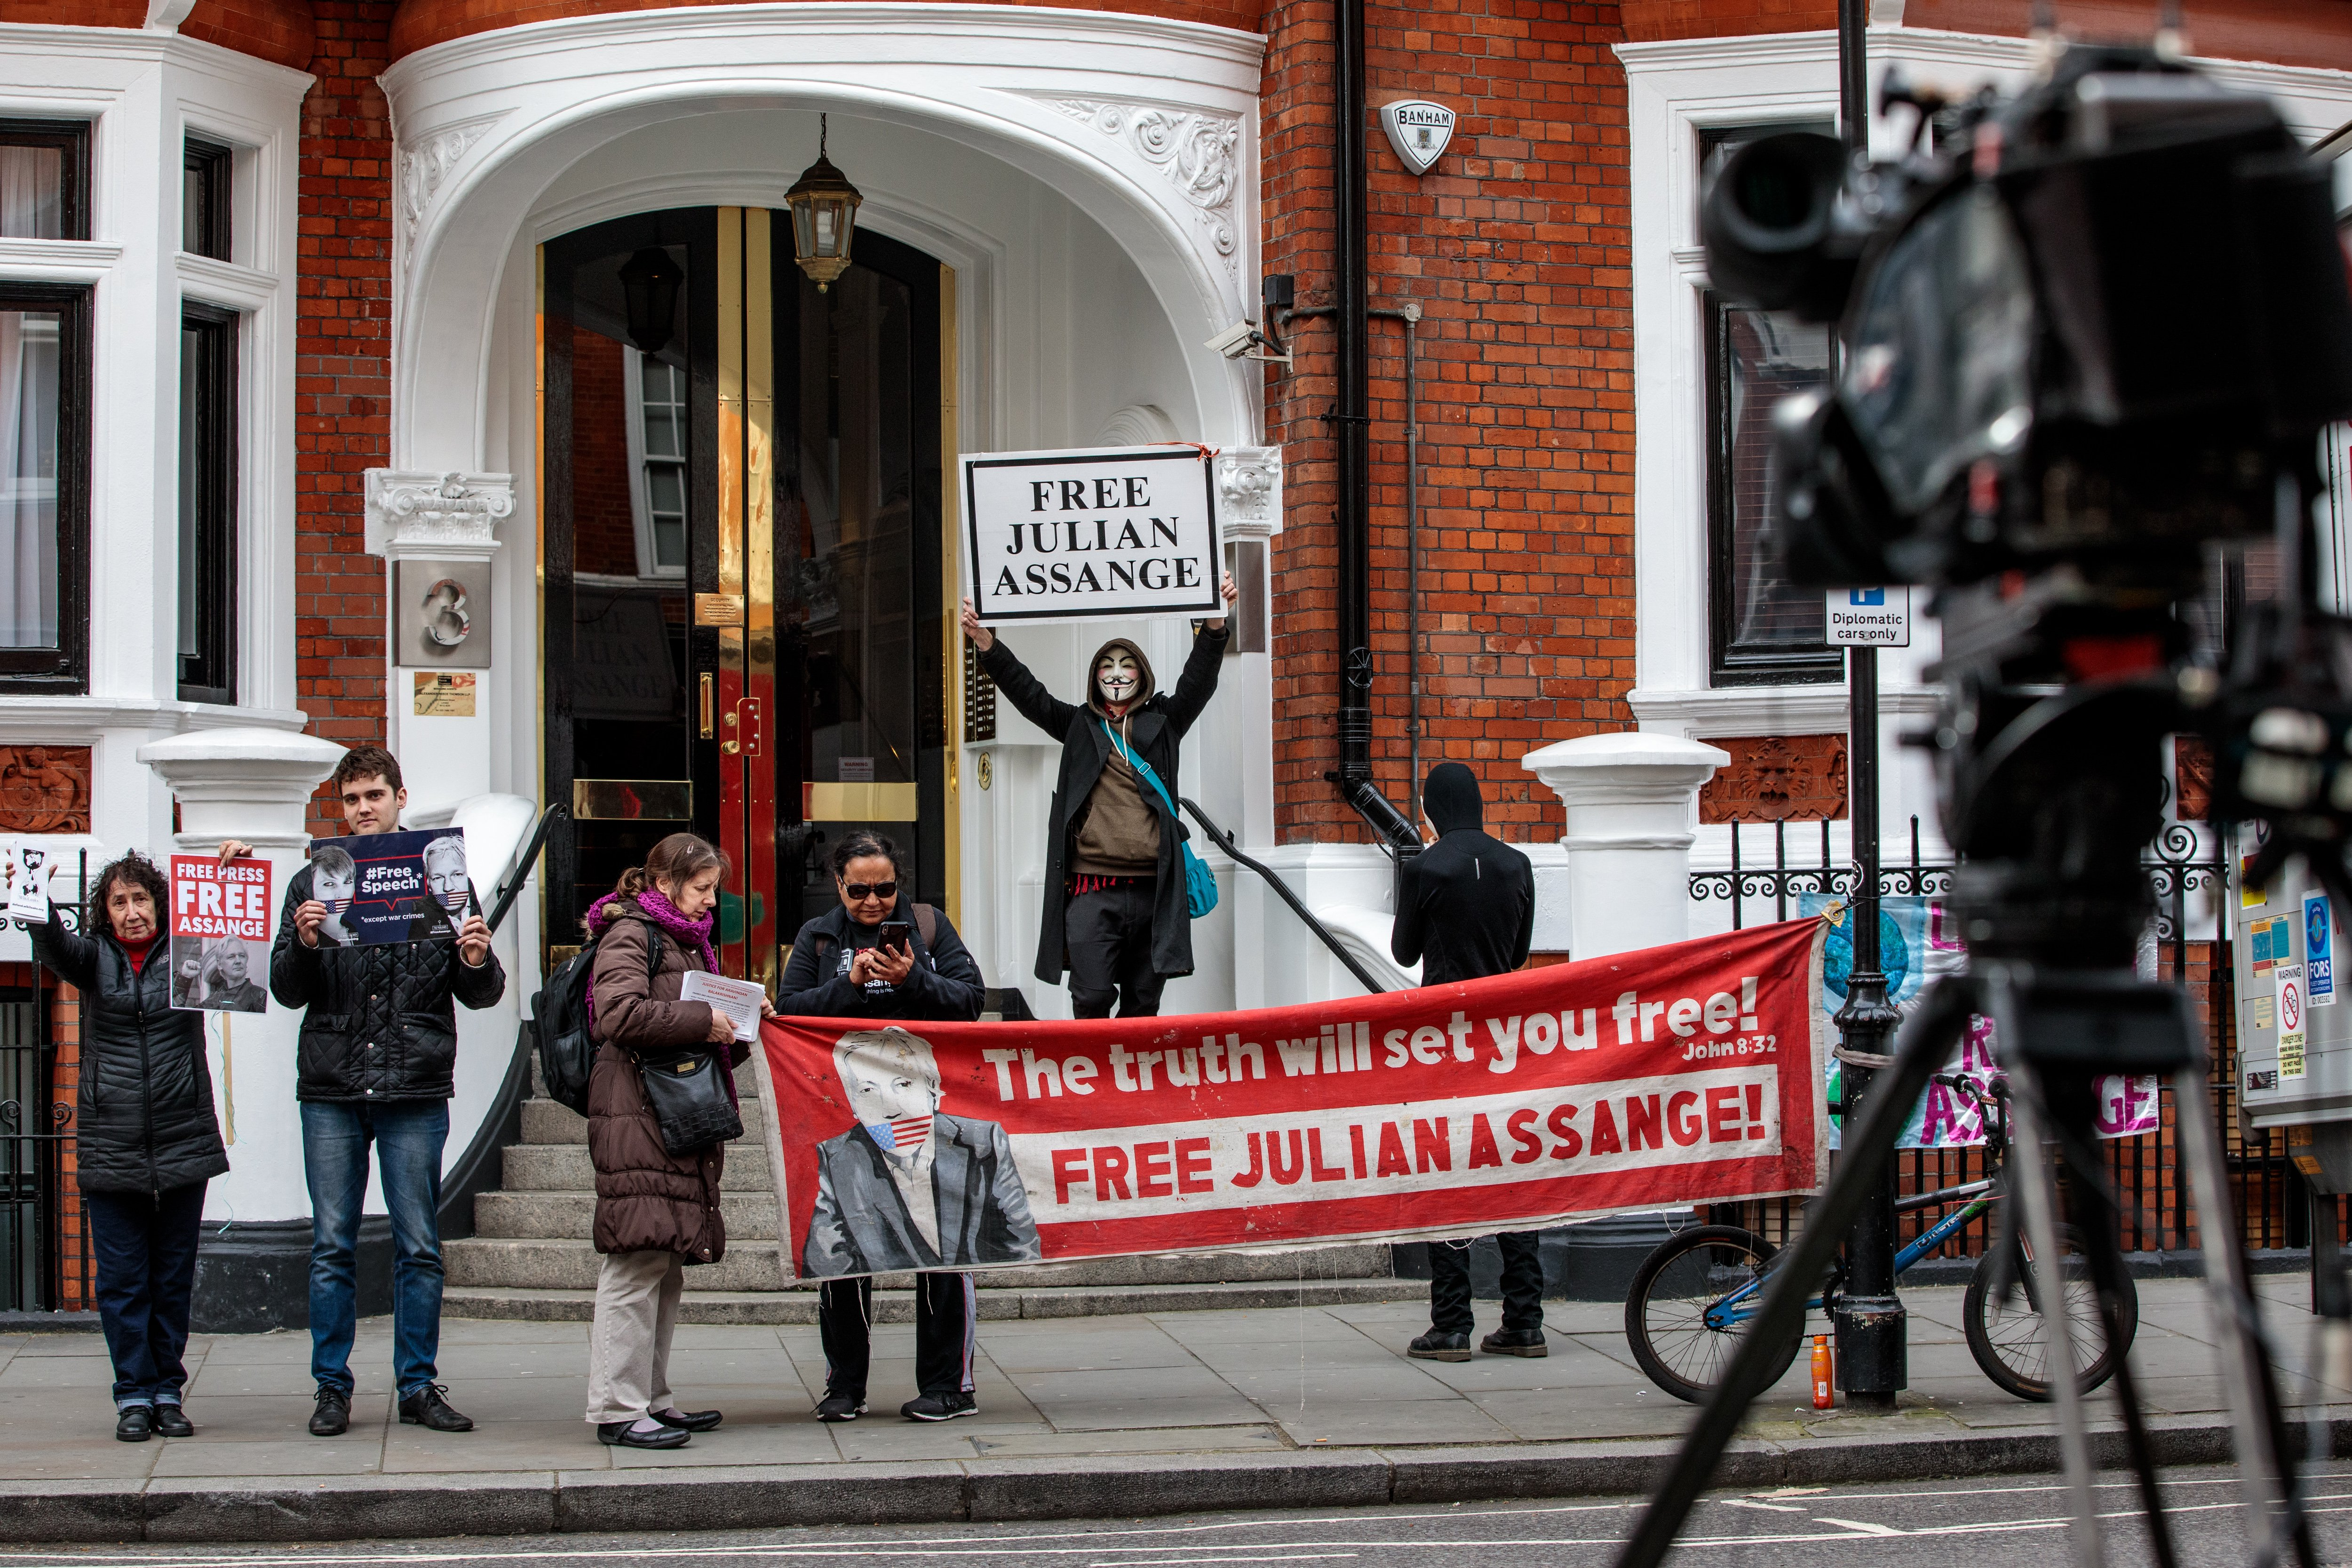 Protesters demonstrate in support of Julian Assange outside the Ecuadorian Embassy in South Kensington on April 5, 2019 in London, England. (Photo by Jack Taylor/Getty Images)